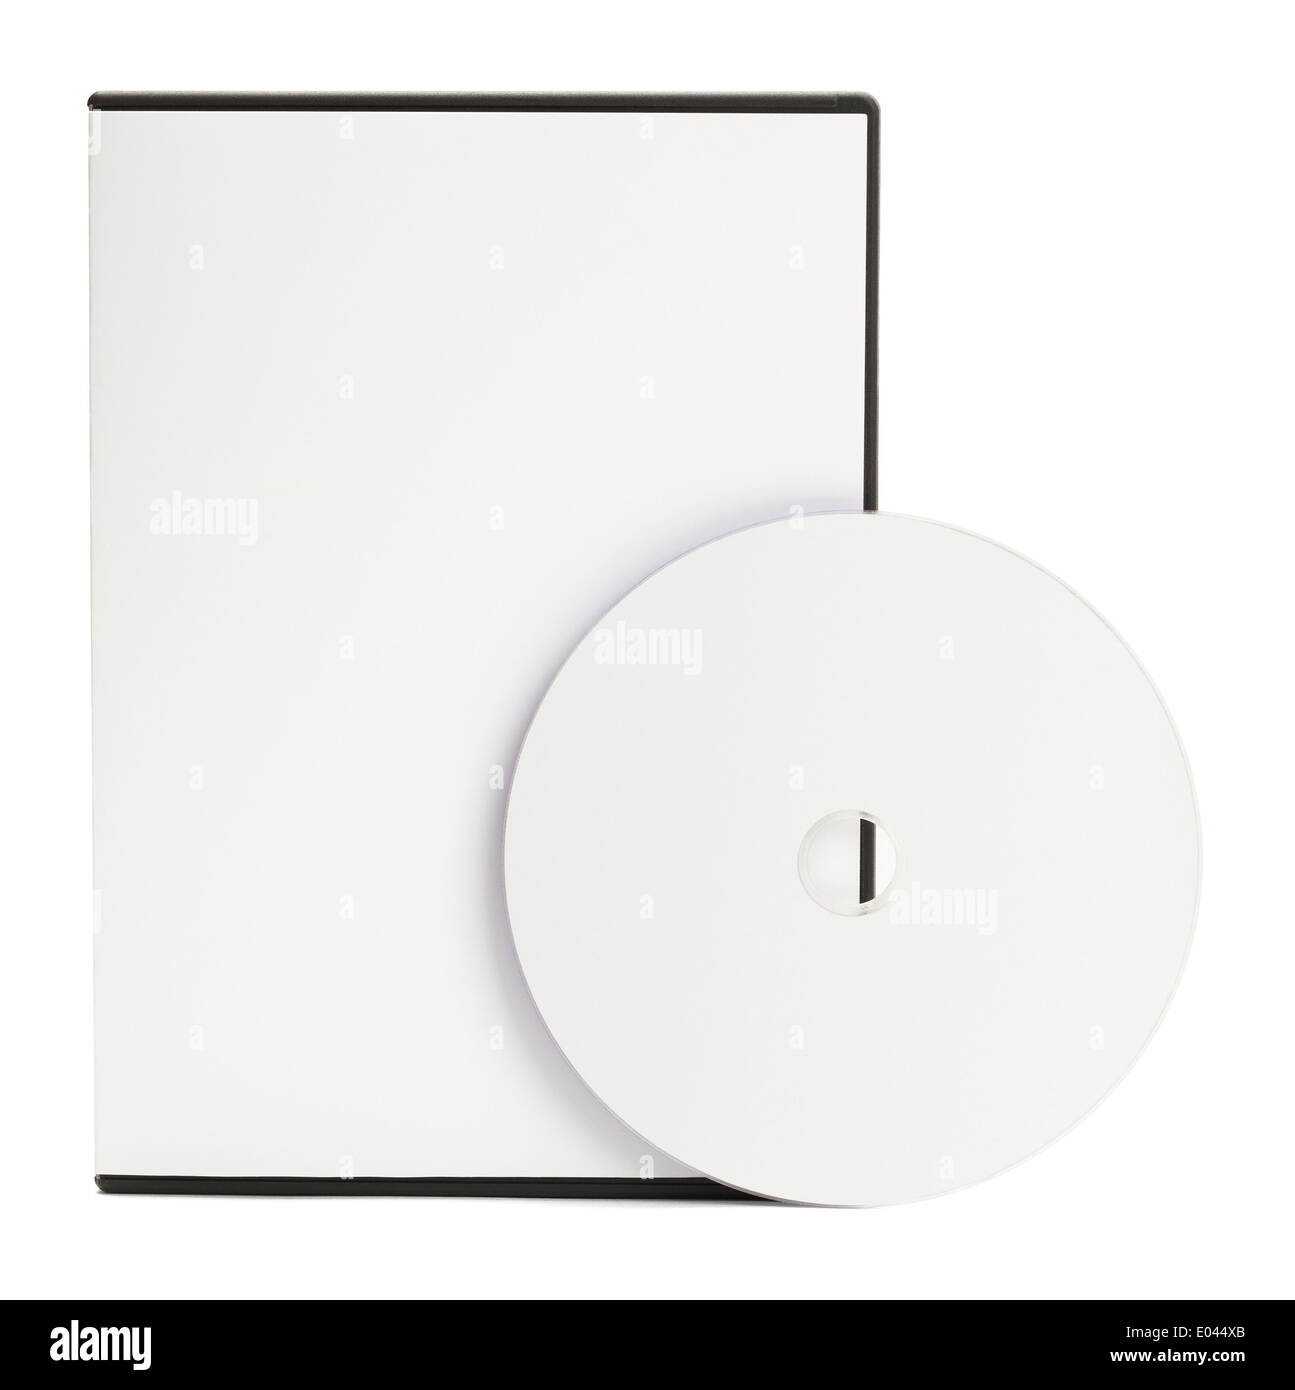 hight resolution of blank white dvd case with blank disc isolated on white background stock image